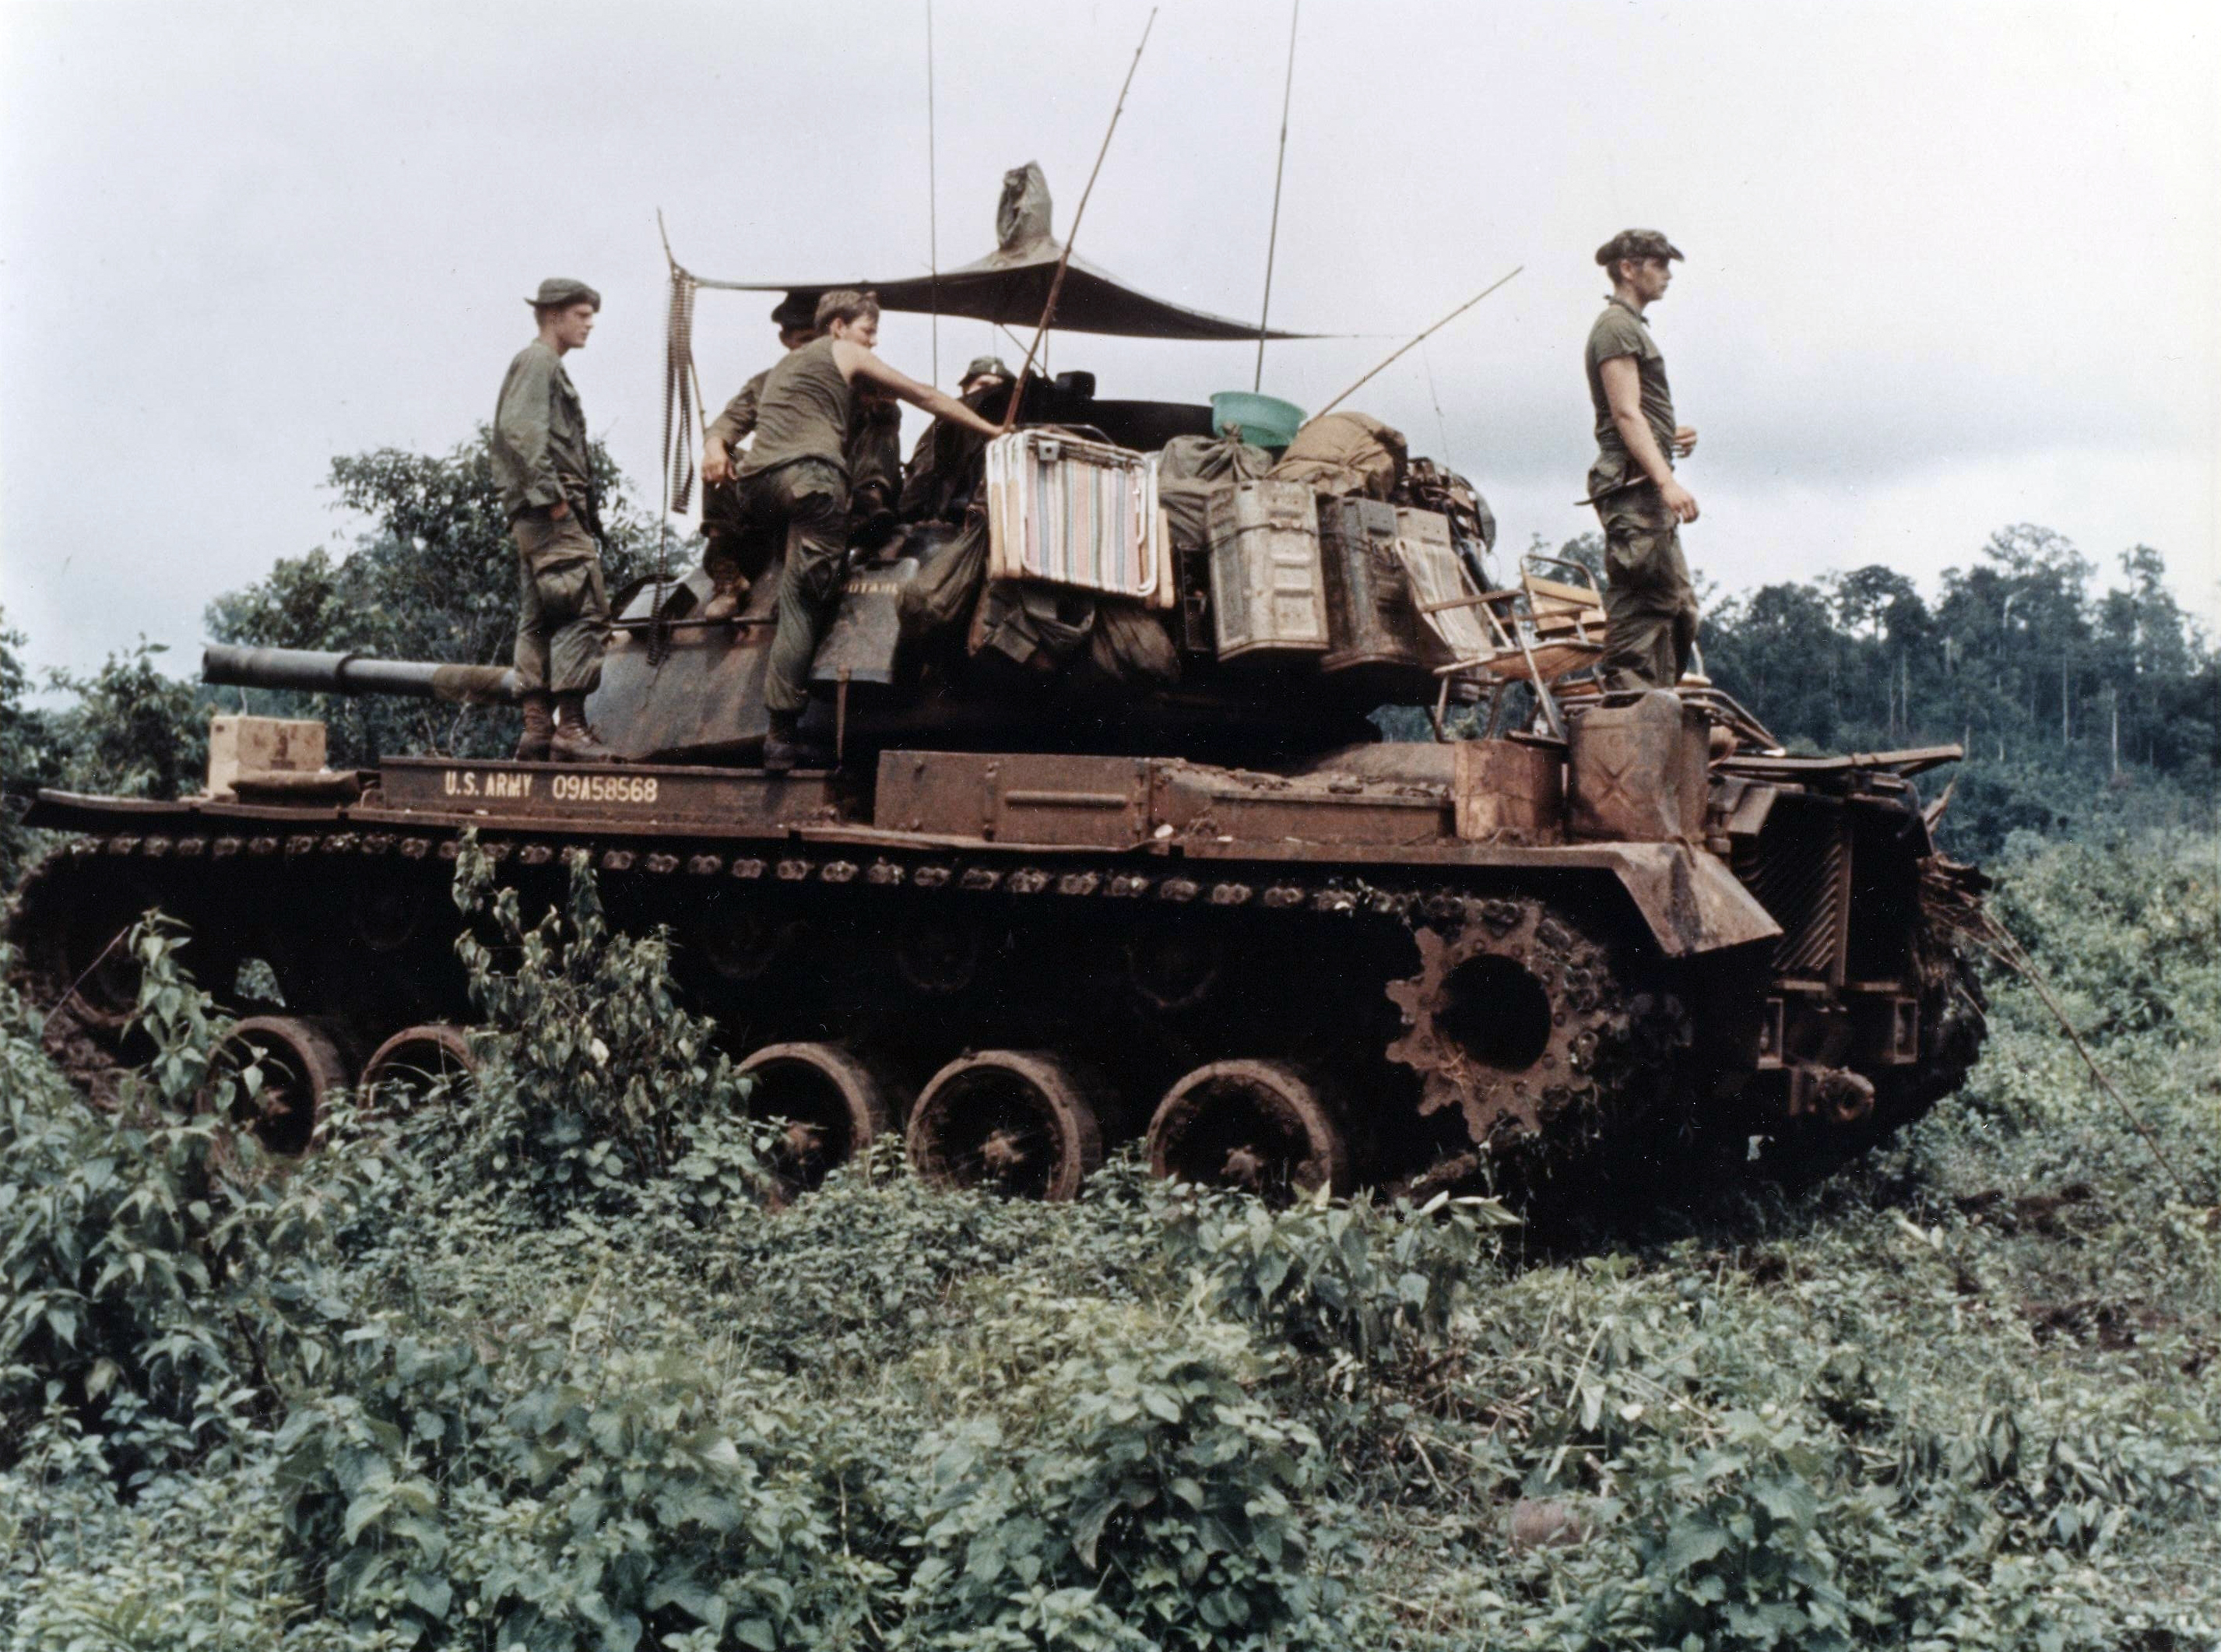 M48 Patton Wikipedia 1995 Ford Xl 4 9 Engine Diagram Men Of Troop B 1st Squadron 10th Cavalry Regiment 4th Infantry Division And Their Tank Move Through The Dense Jungle In Central Highlands